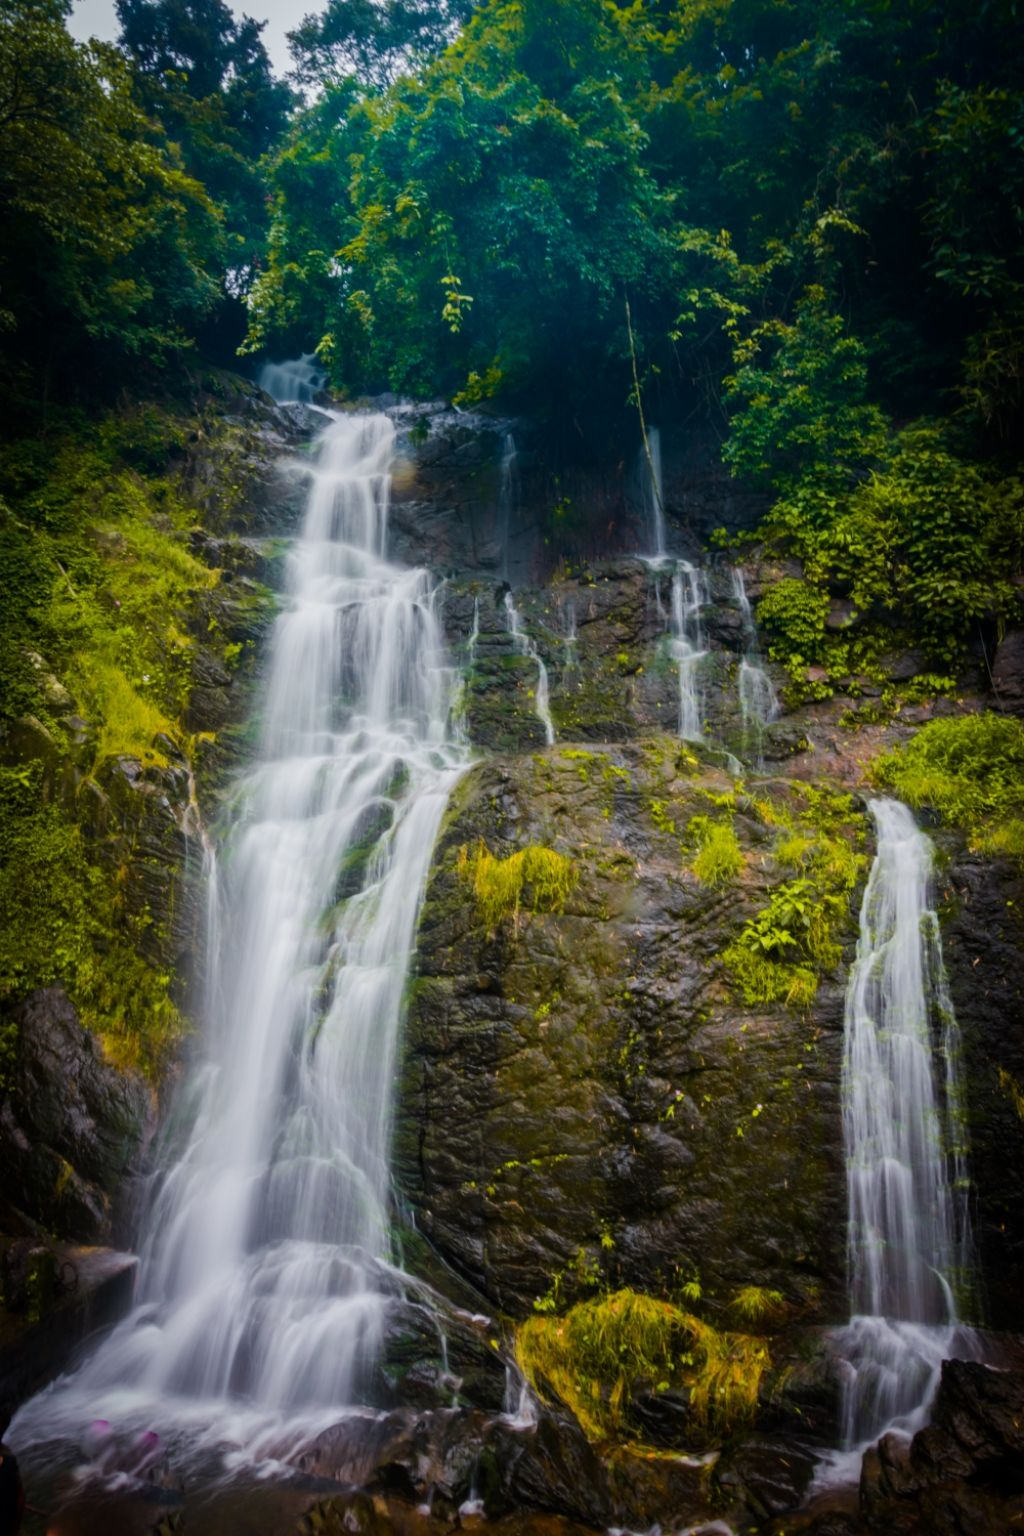 Photo of Valanjanganam waterfalls By Rishab Tripathy